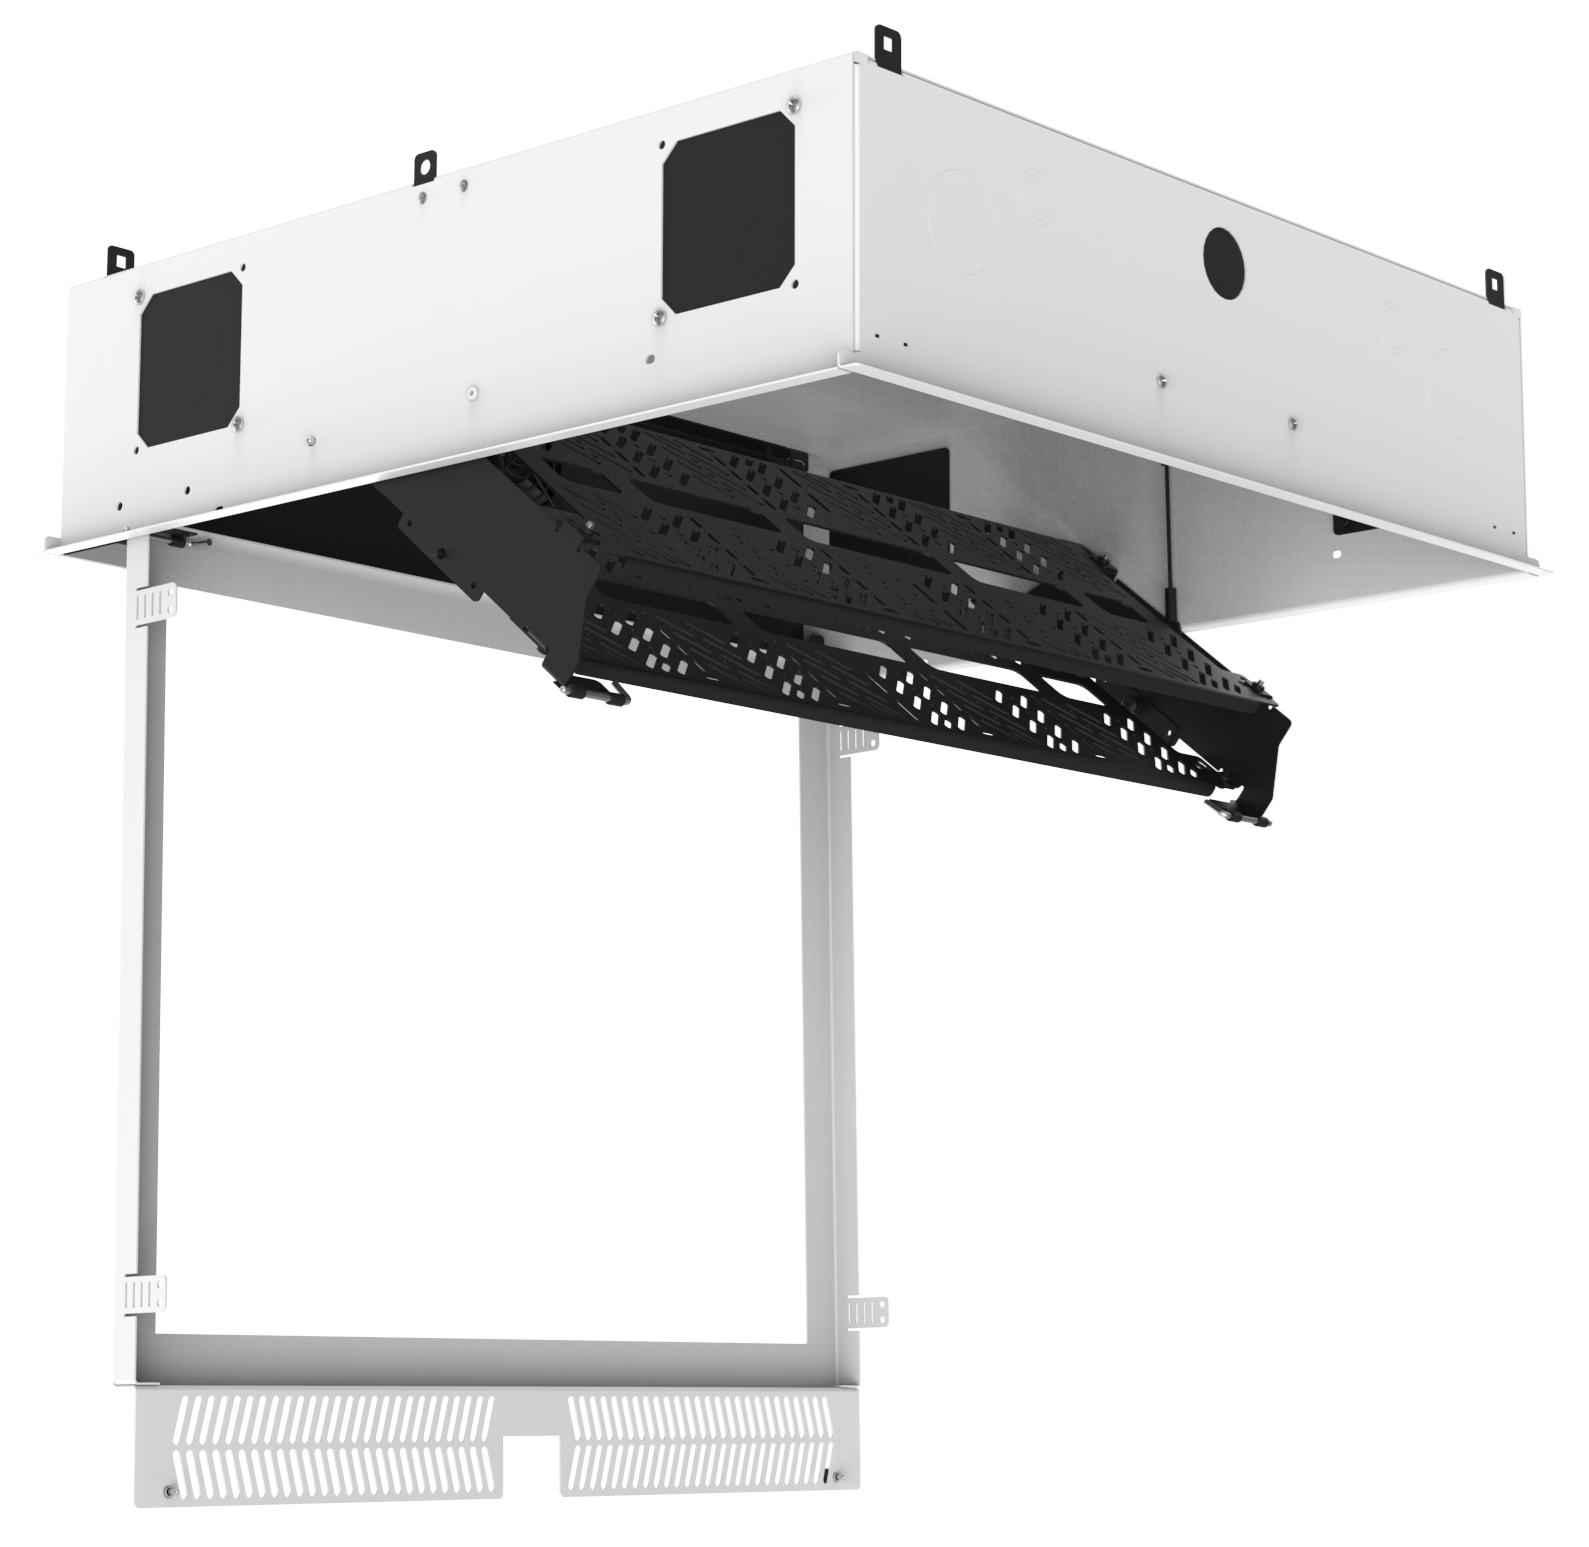 Atlasied Cr222 Nr Concealed Ceiling Rack For 19 Quot Equipment